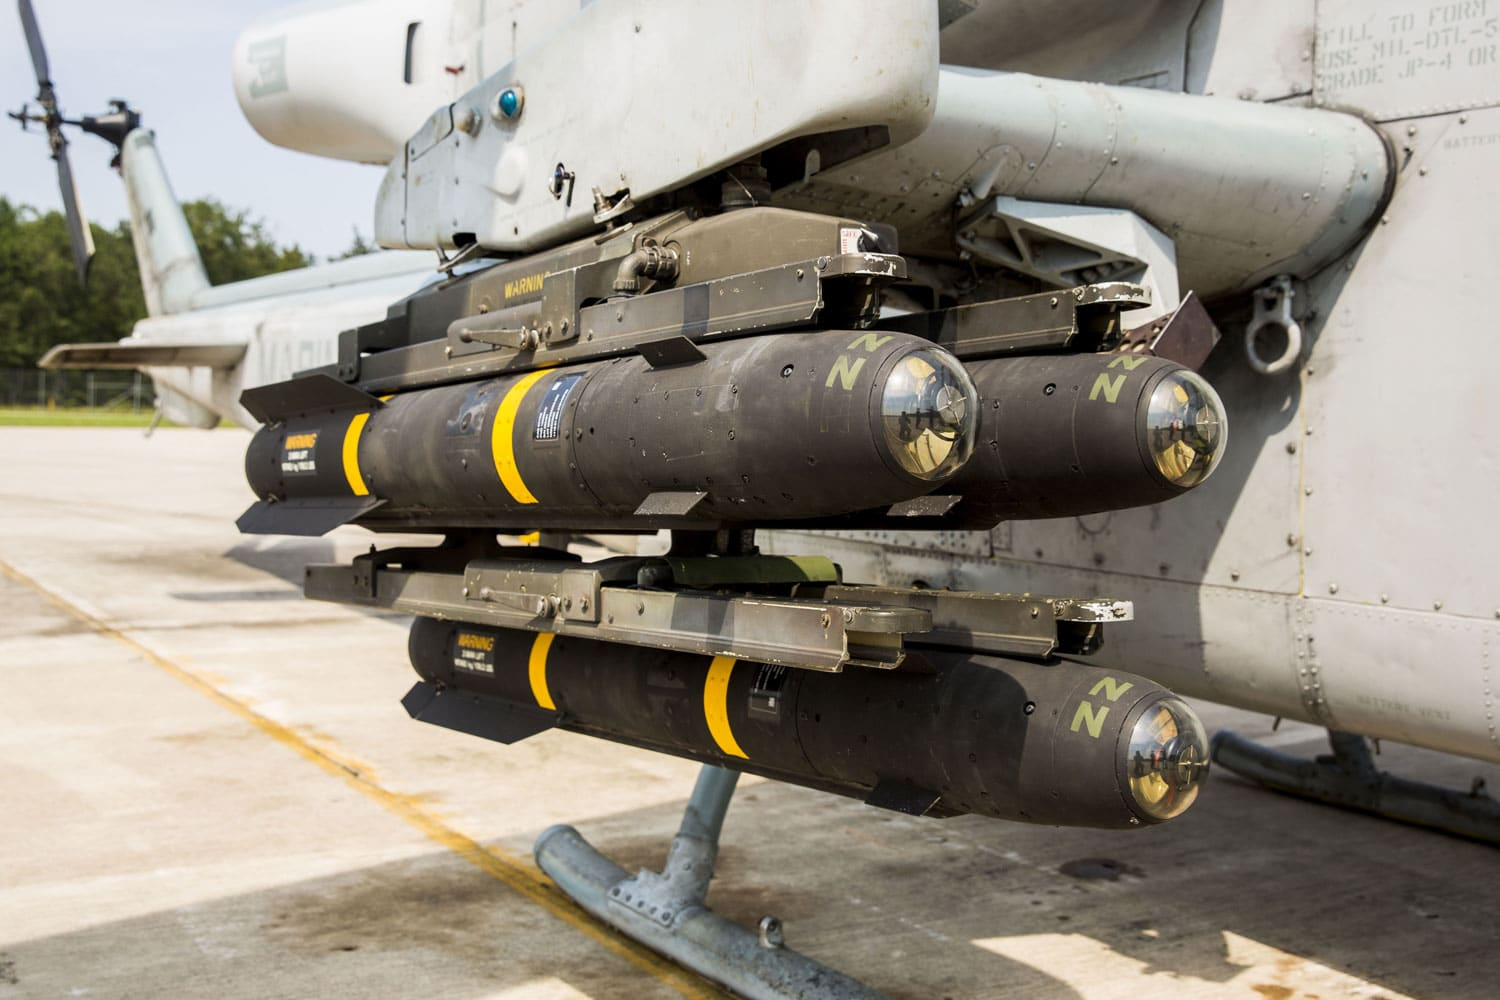 AGM-14 hellfire missiles during Northern Strike at the Combat Readiness Training Center Alpena, MI. Northern Strike is a joint exercise hosted by the Michigan Air National Guard that emphasizes on close air support and joint fire support to enhance combat readiness.